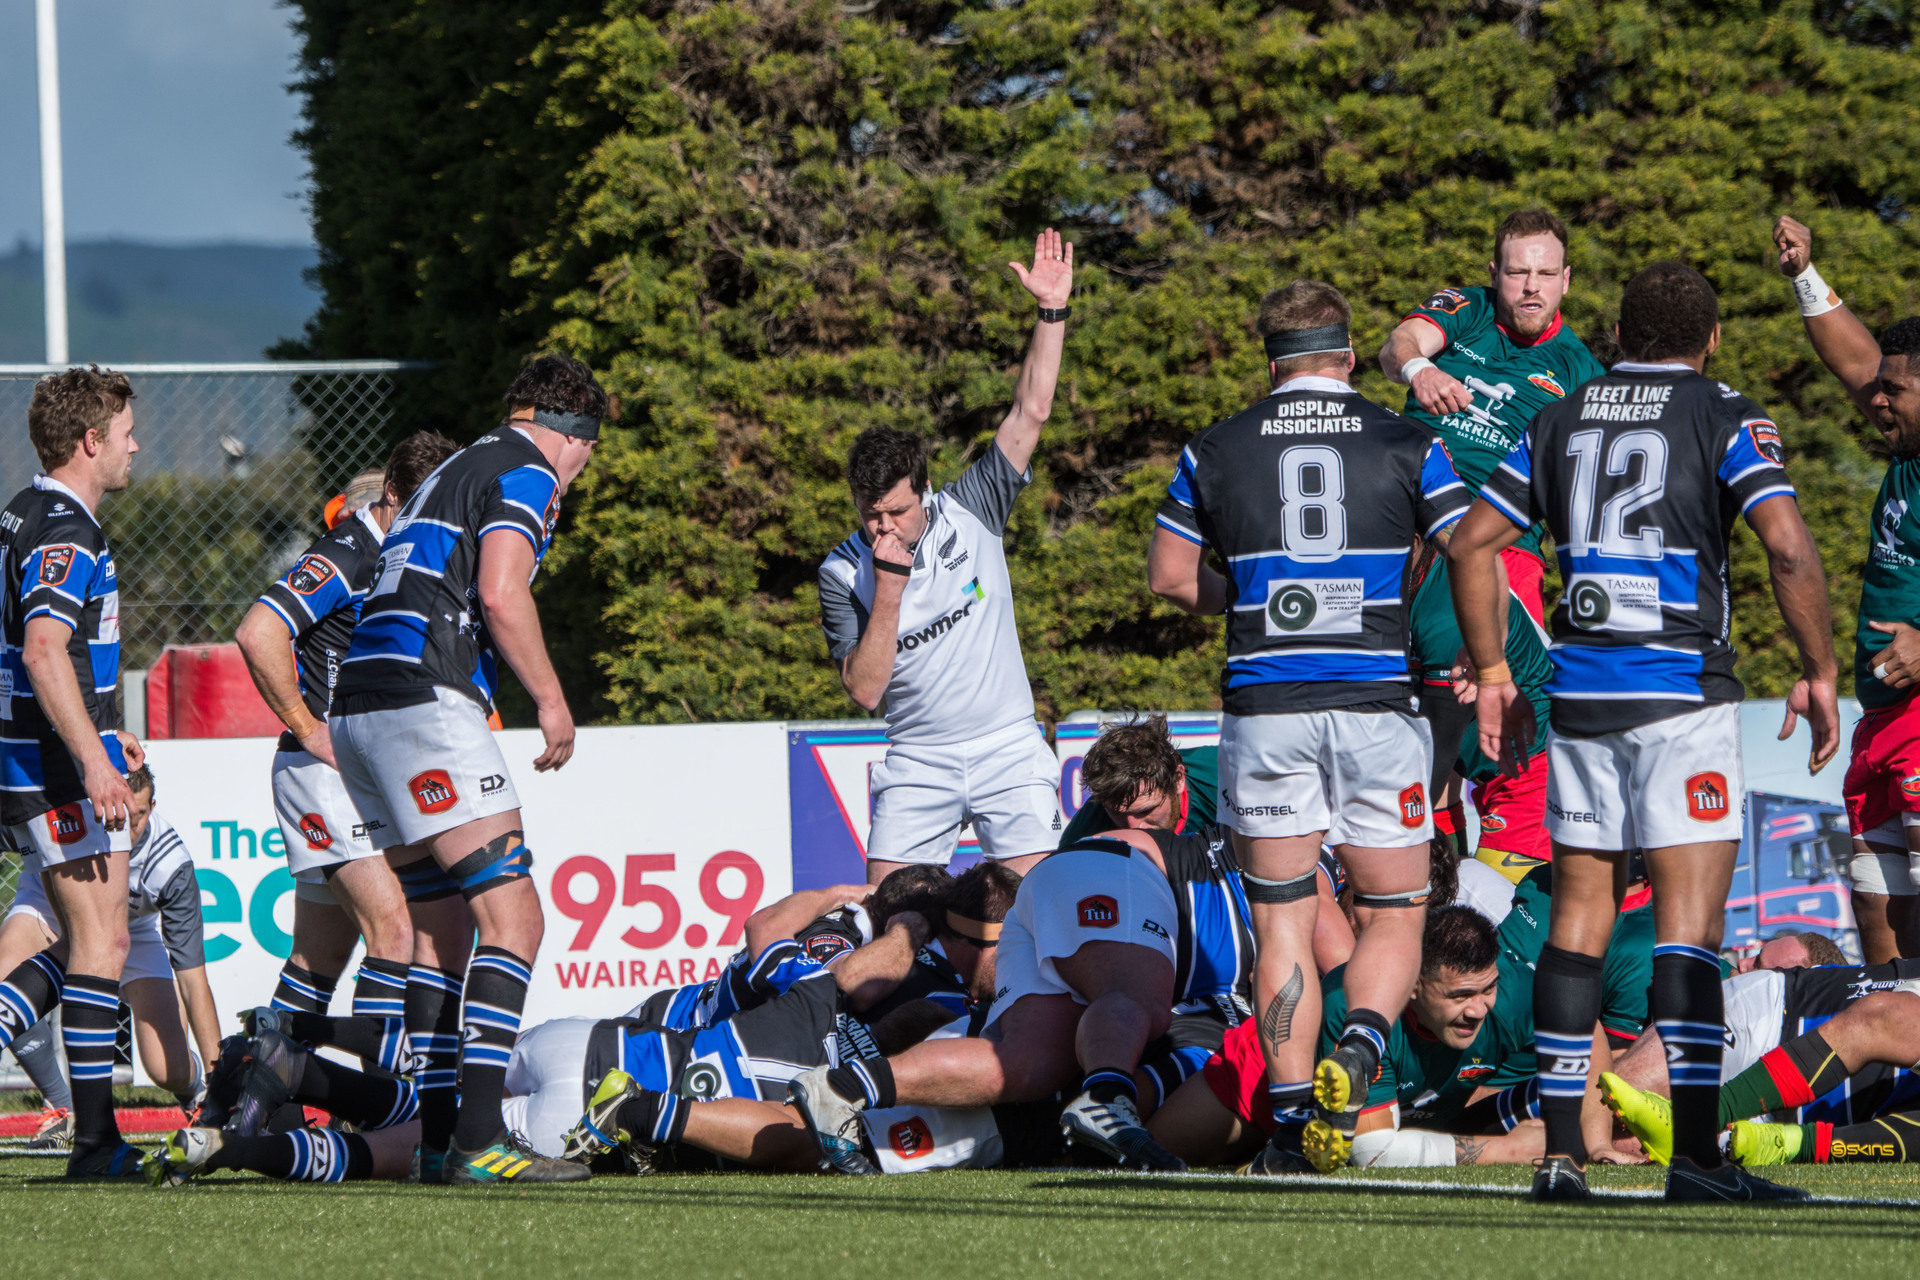 Rugby: Heartland Championship first round serves up surprises